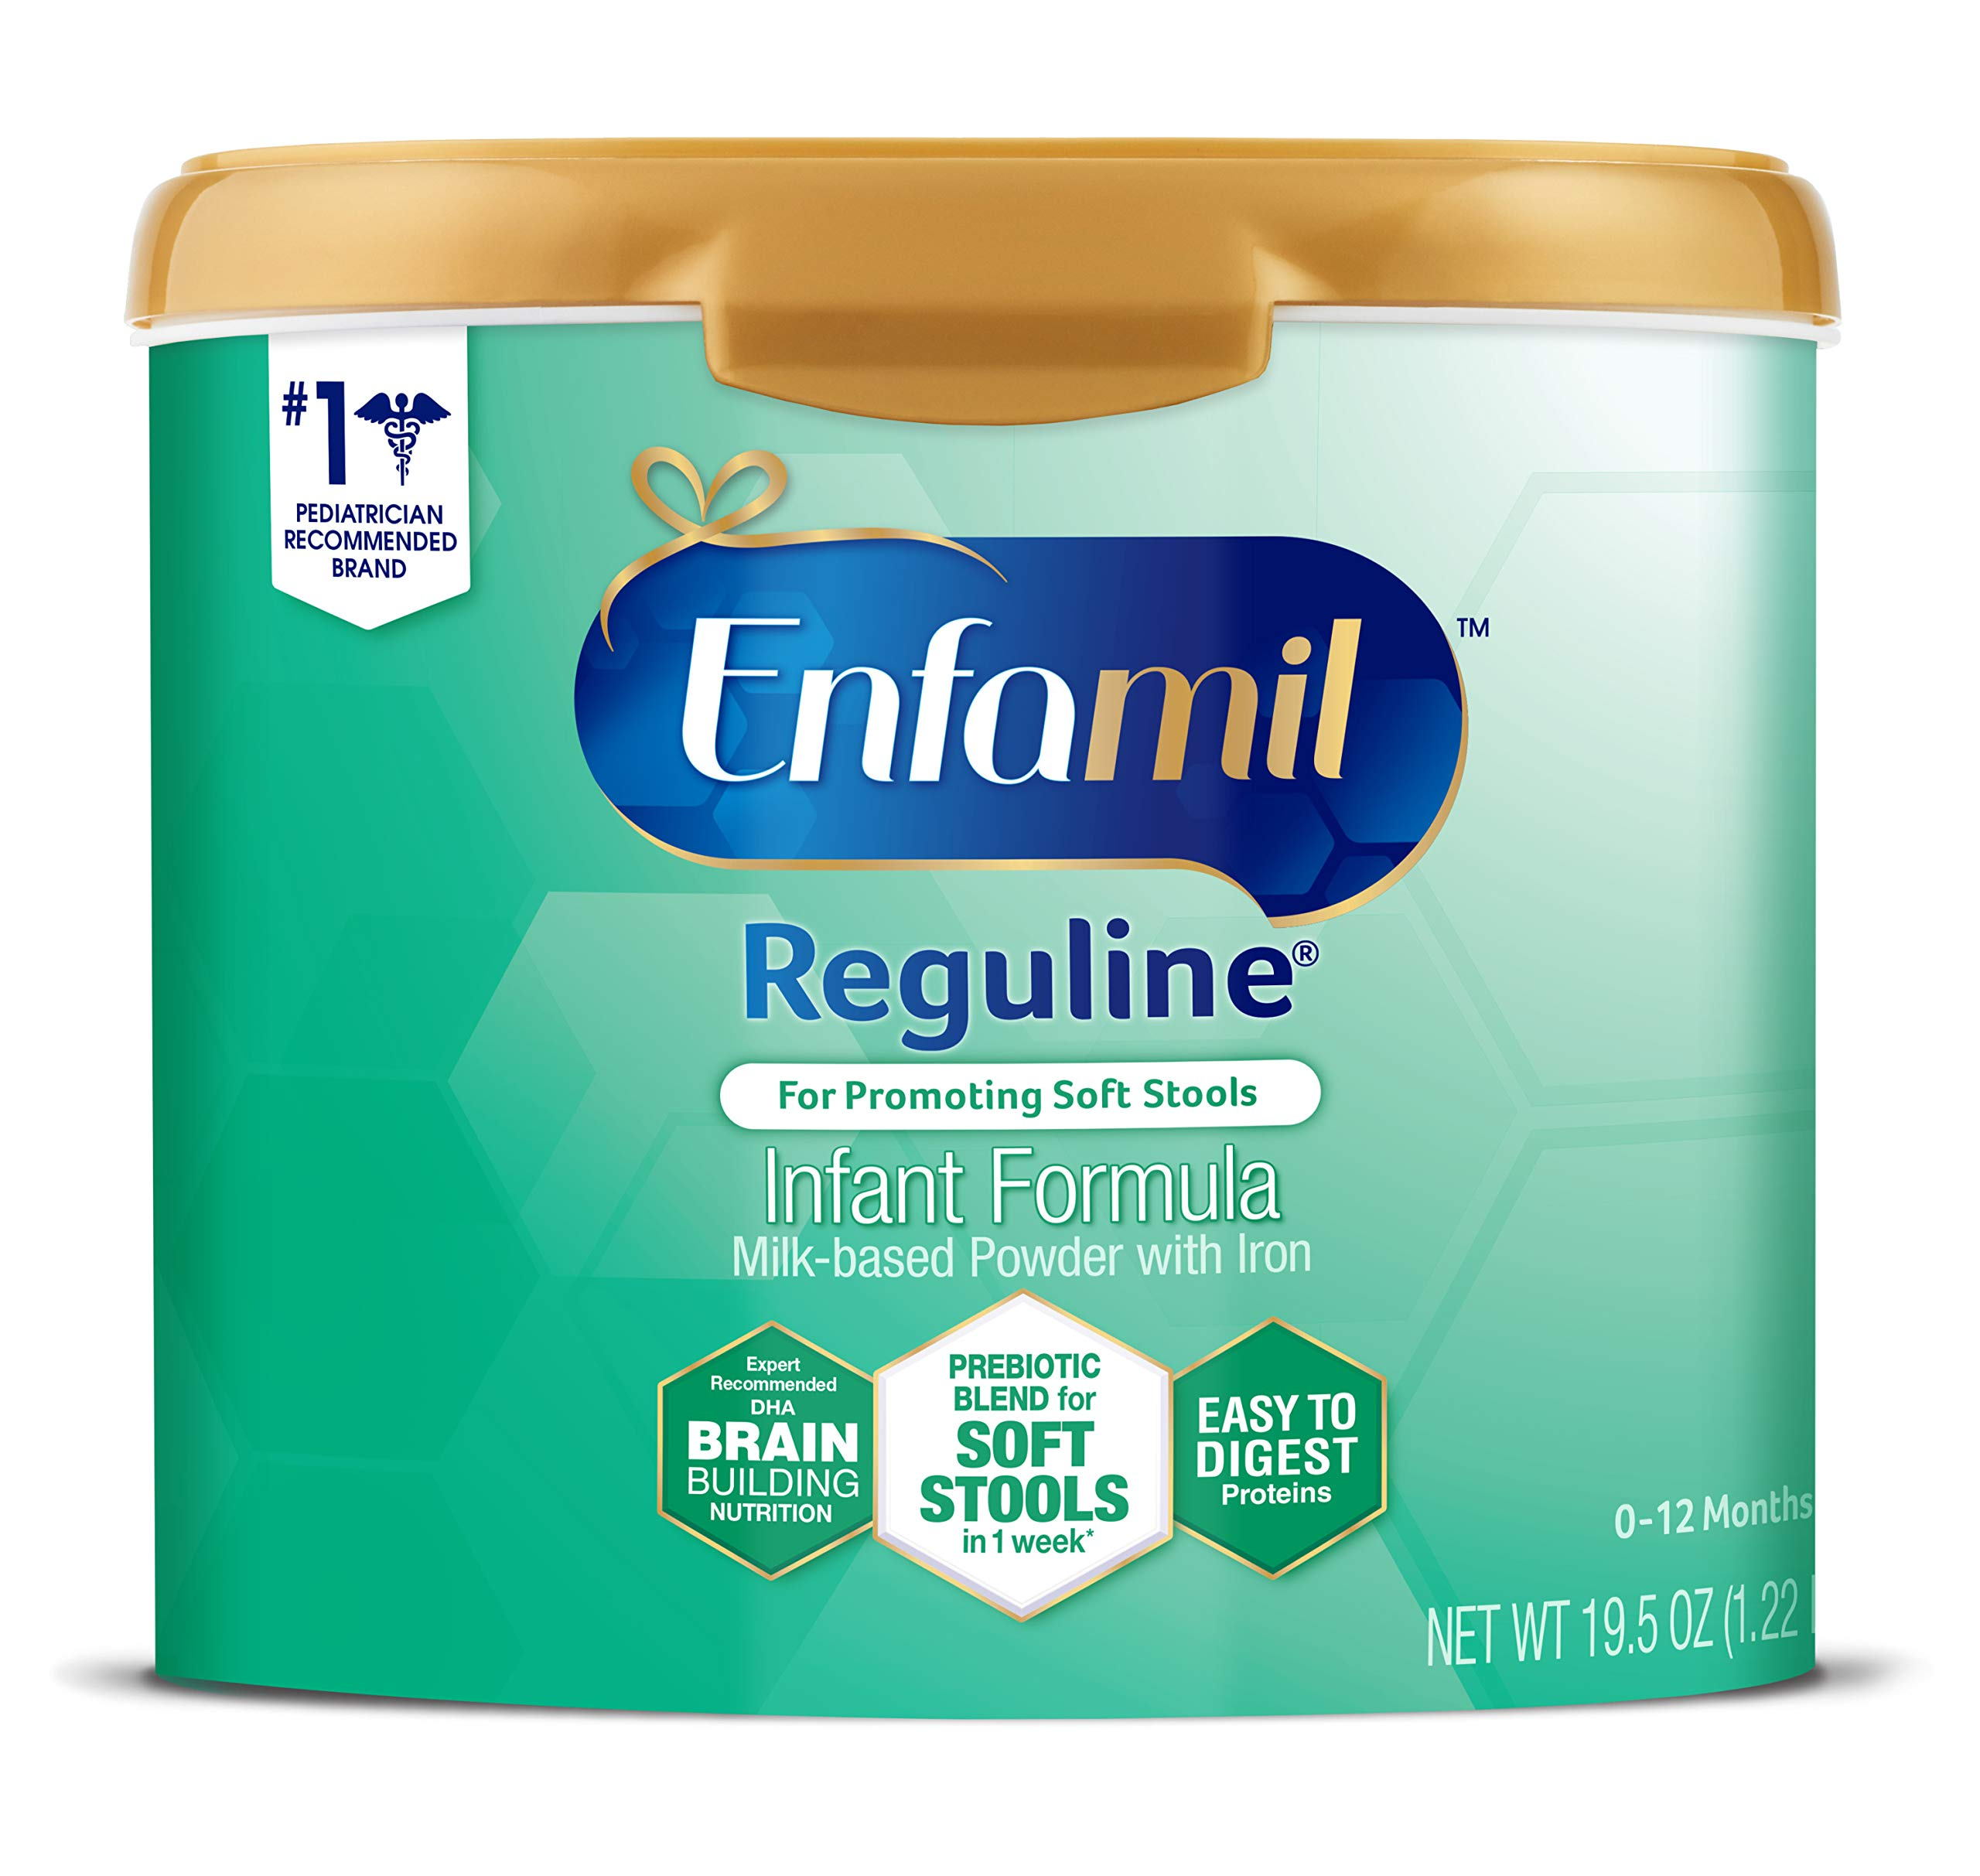 Enfamil Reguline Constipation Baby Formula Milk Powder to Promote Soft Stools, Omega 3, Probiotics, Iron, Immune Support, 19.5 Ounce (Packaging May Vary)